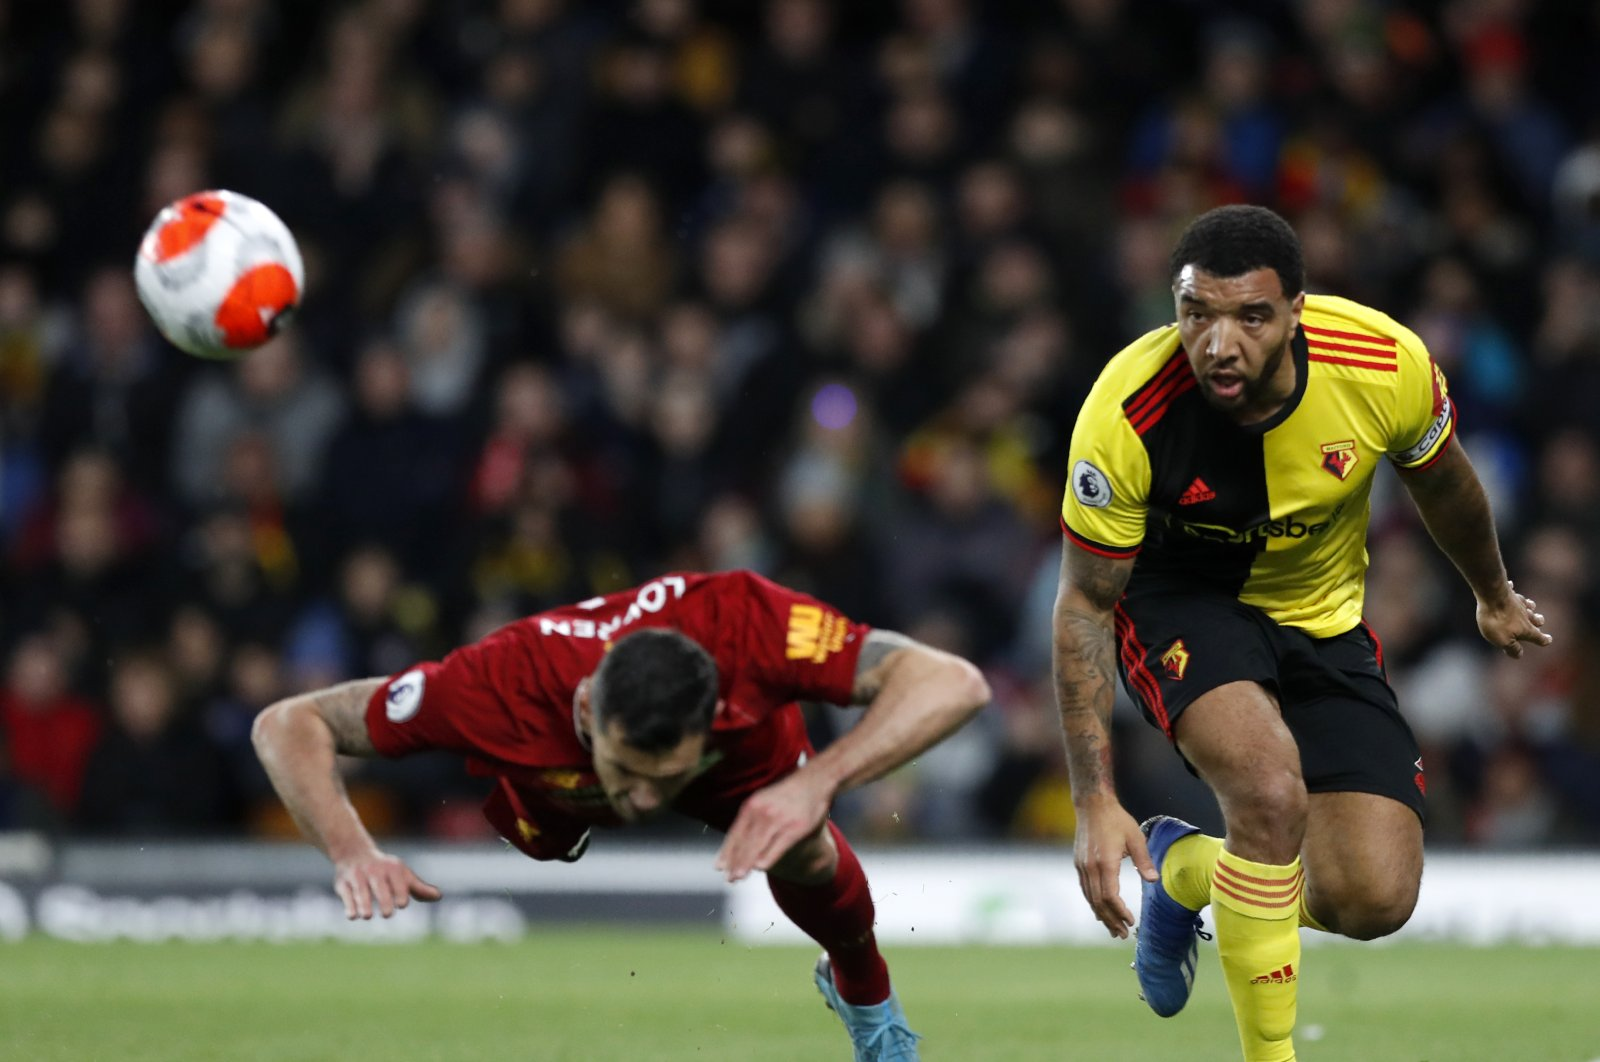 Watford's Troy Deeney (R) duels for the ball with Liverpool's Dejan Lovren during a Premier League match in Watford, England, Feb. 29, 2020. (AP Photo)